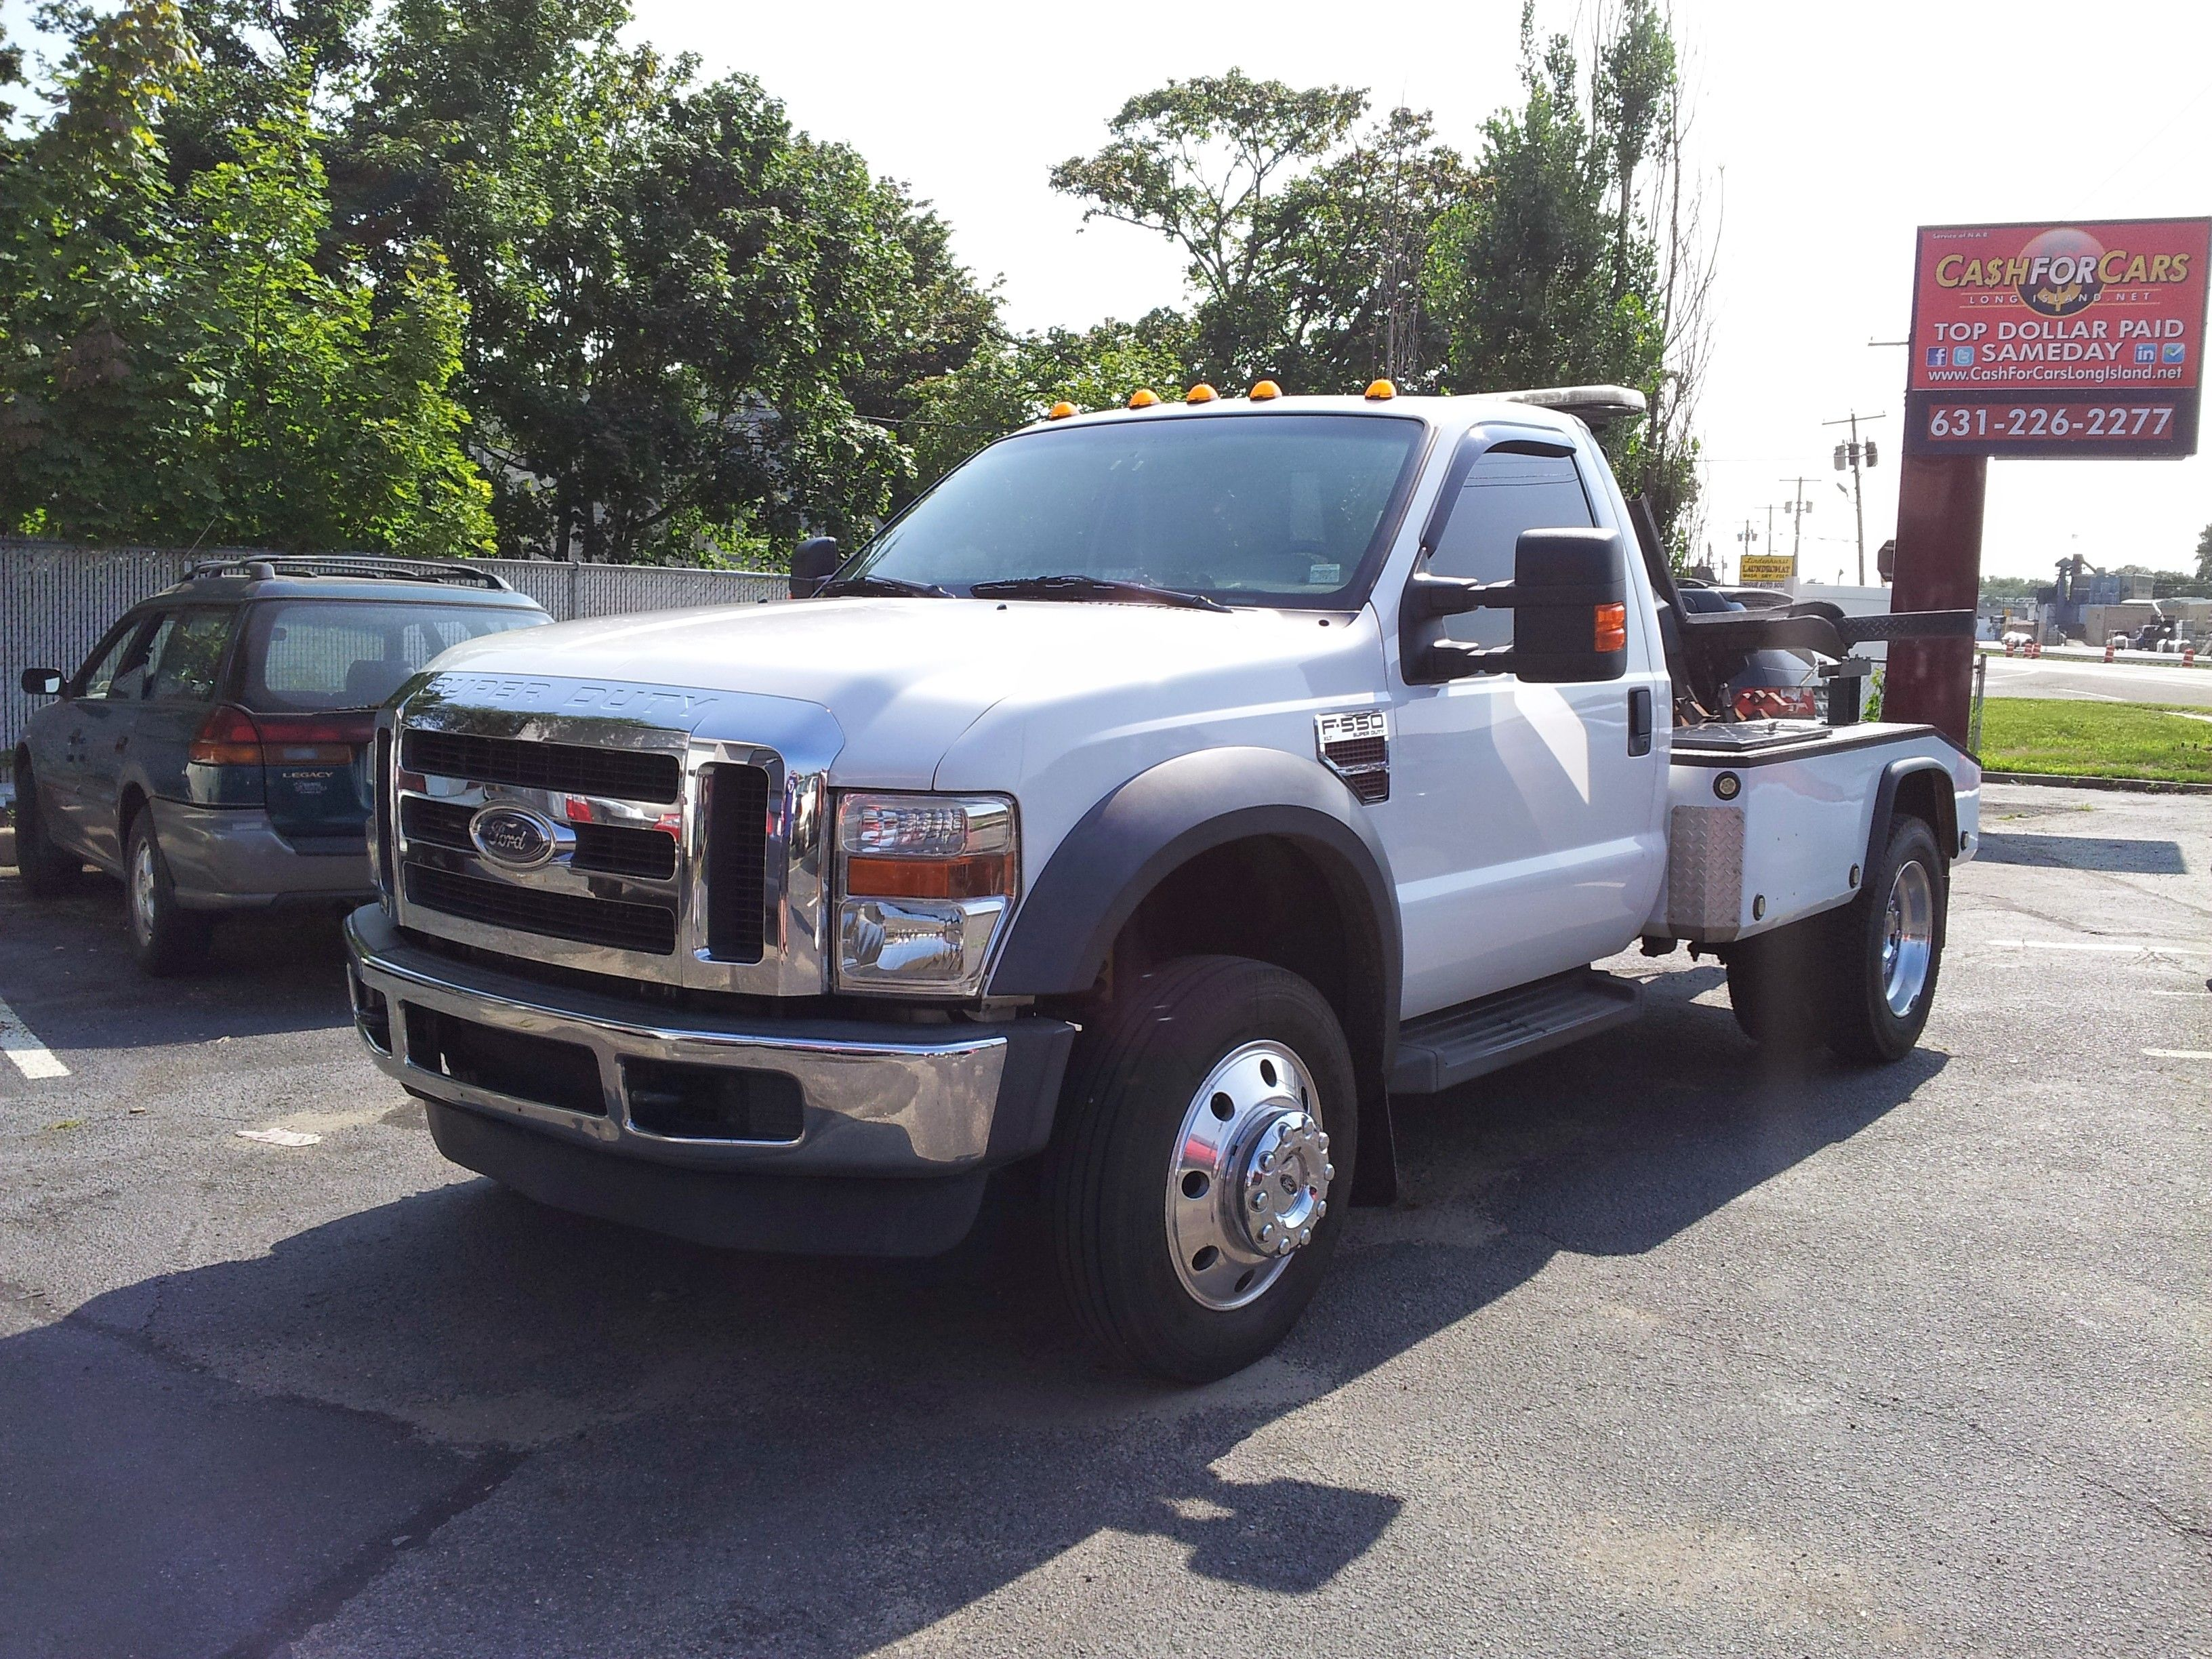 2008 ford f550 wrecker tow truck for sale tow truck long island 631 661 6432